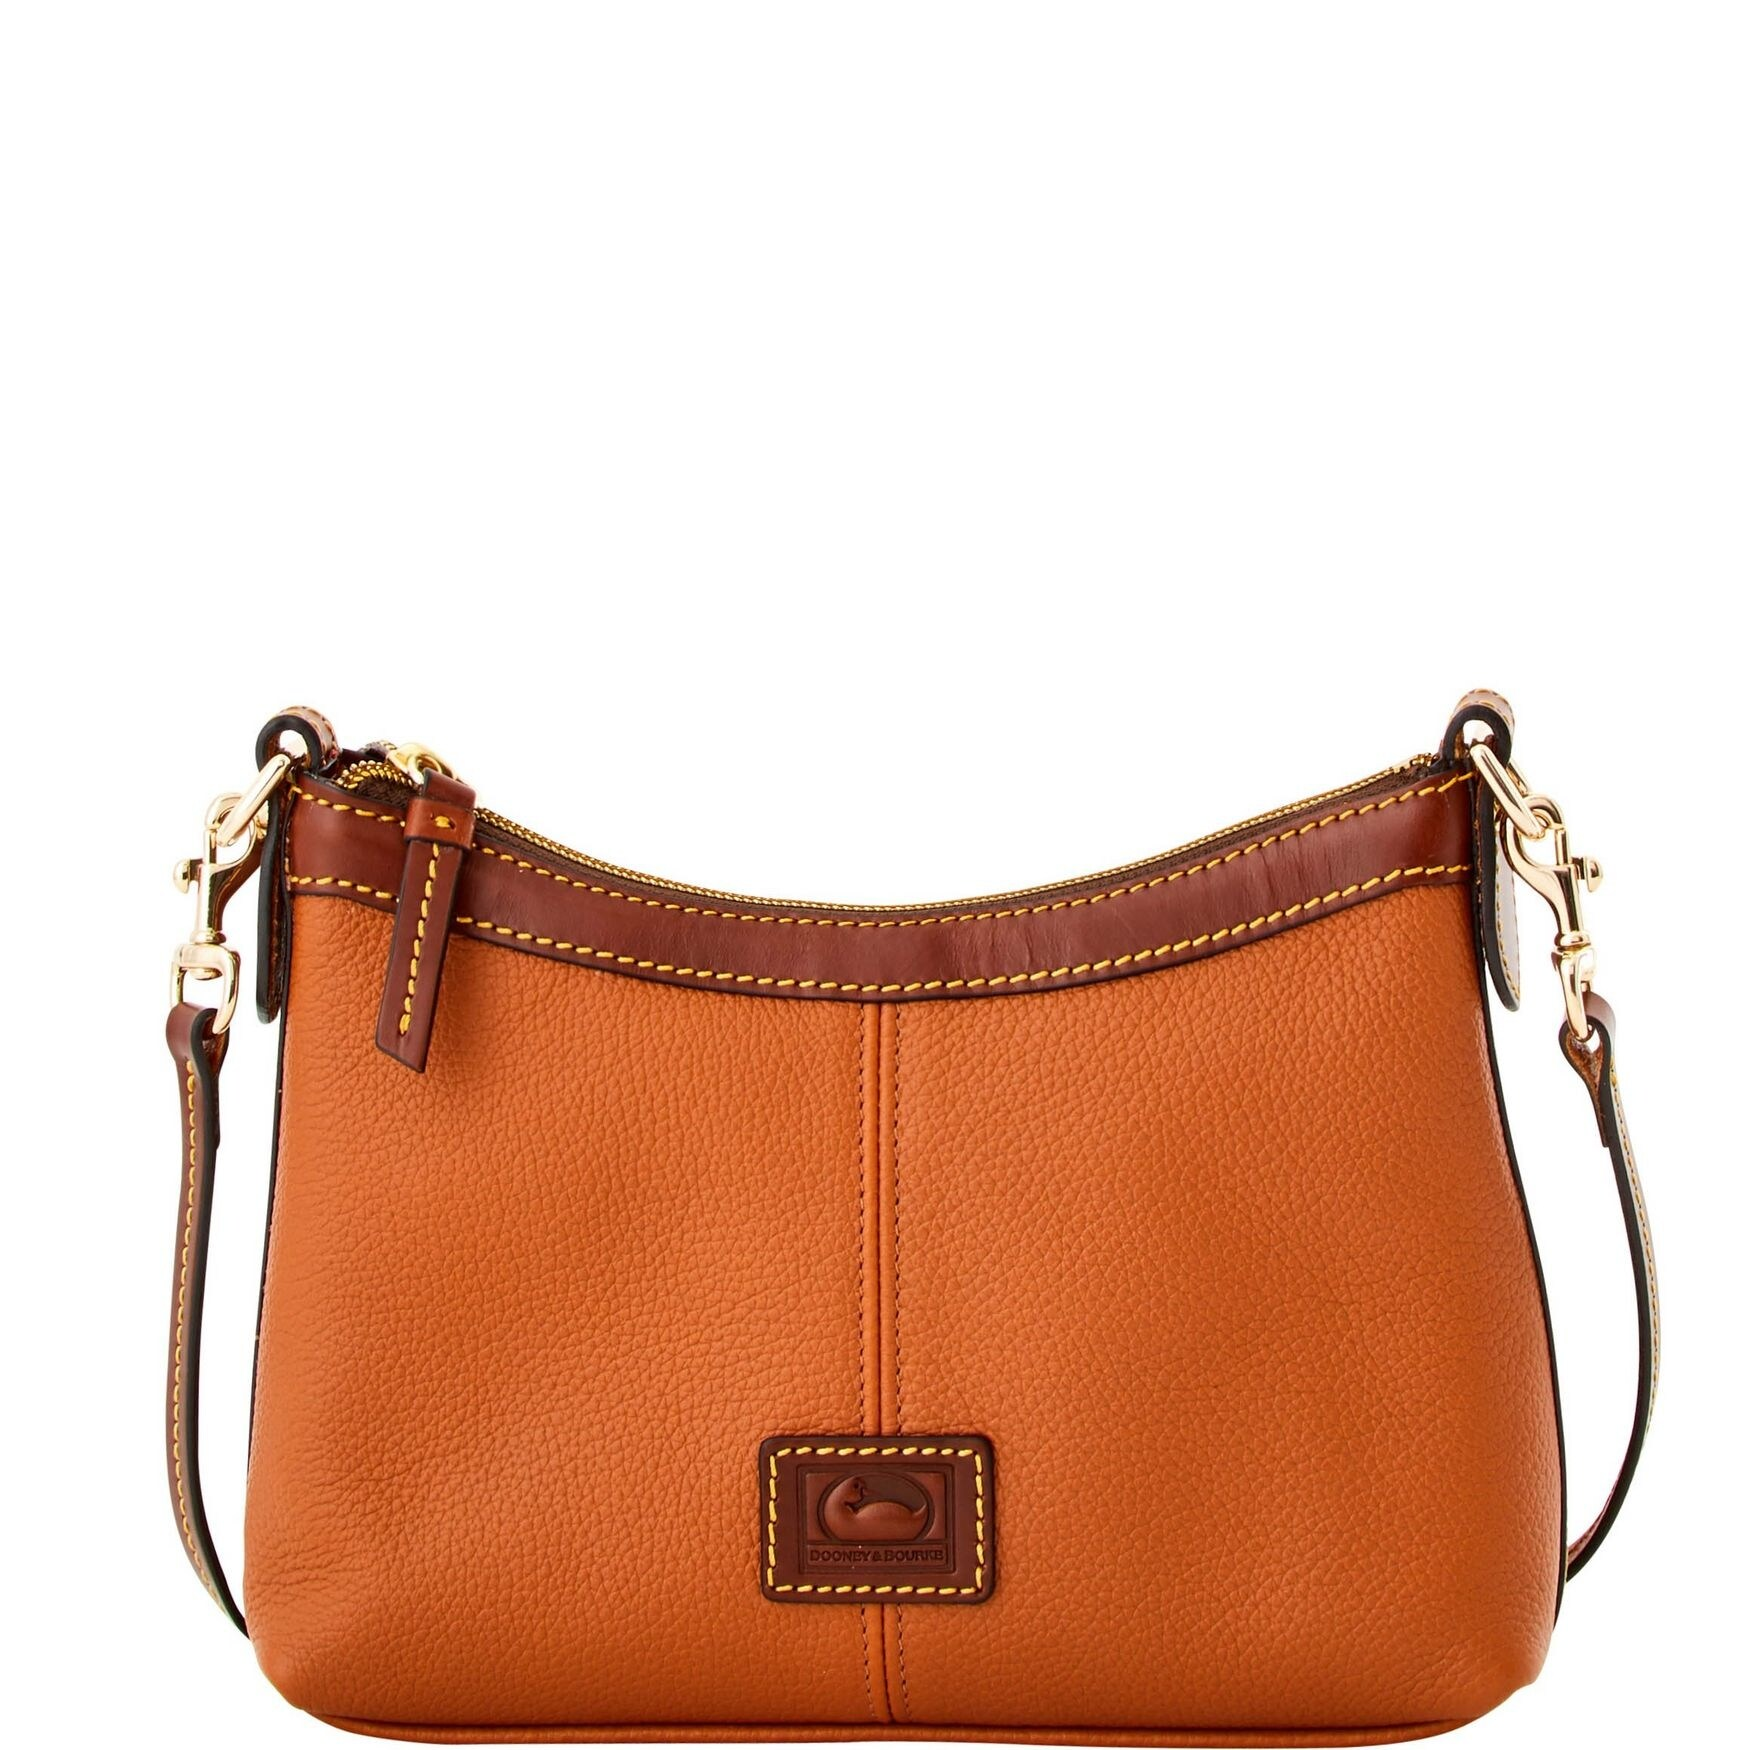 448d0b11be Handbags | Shop our Best Clothing & Shoes Deals Online at Overstock